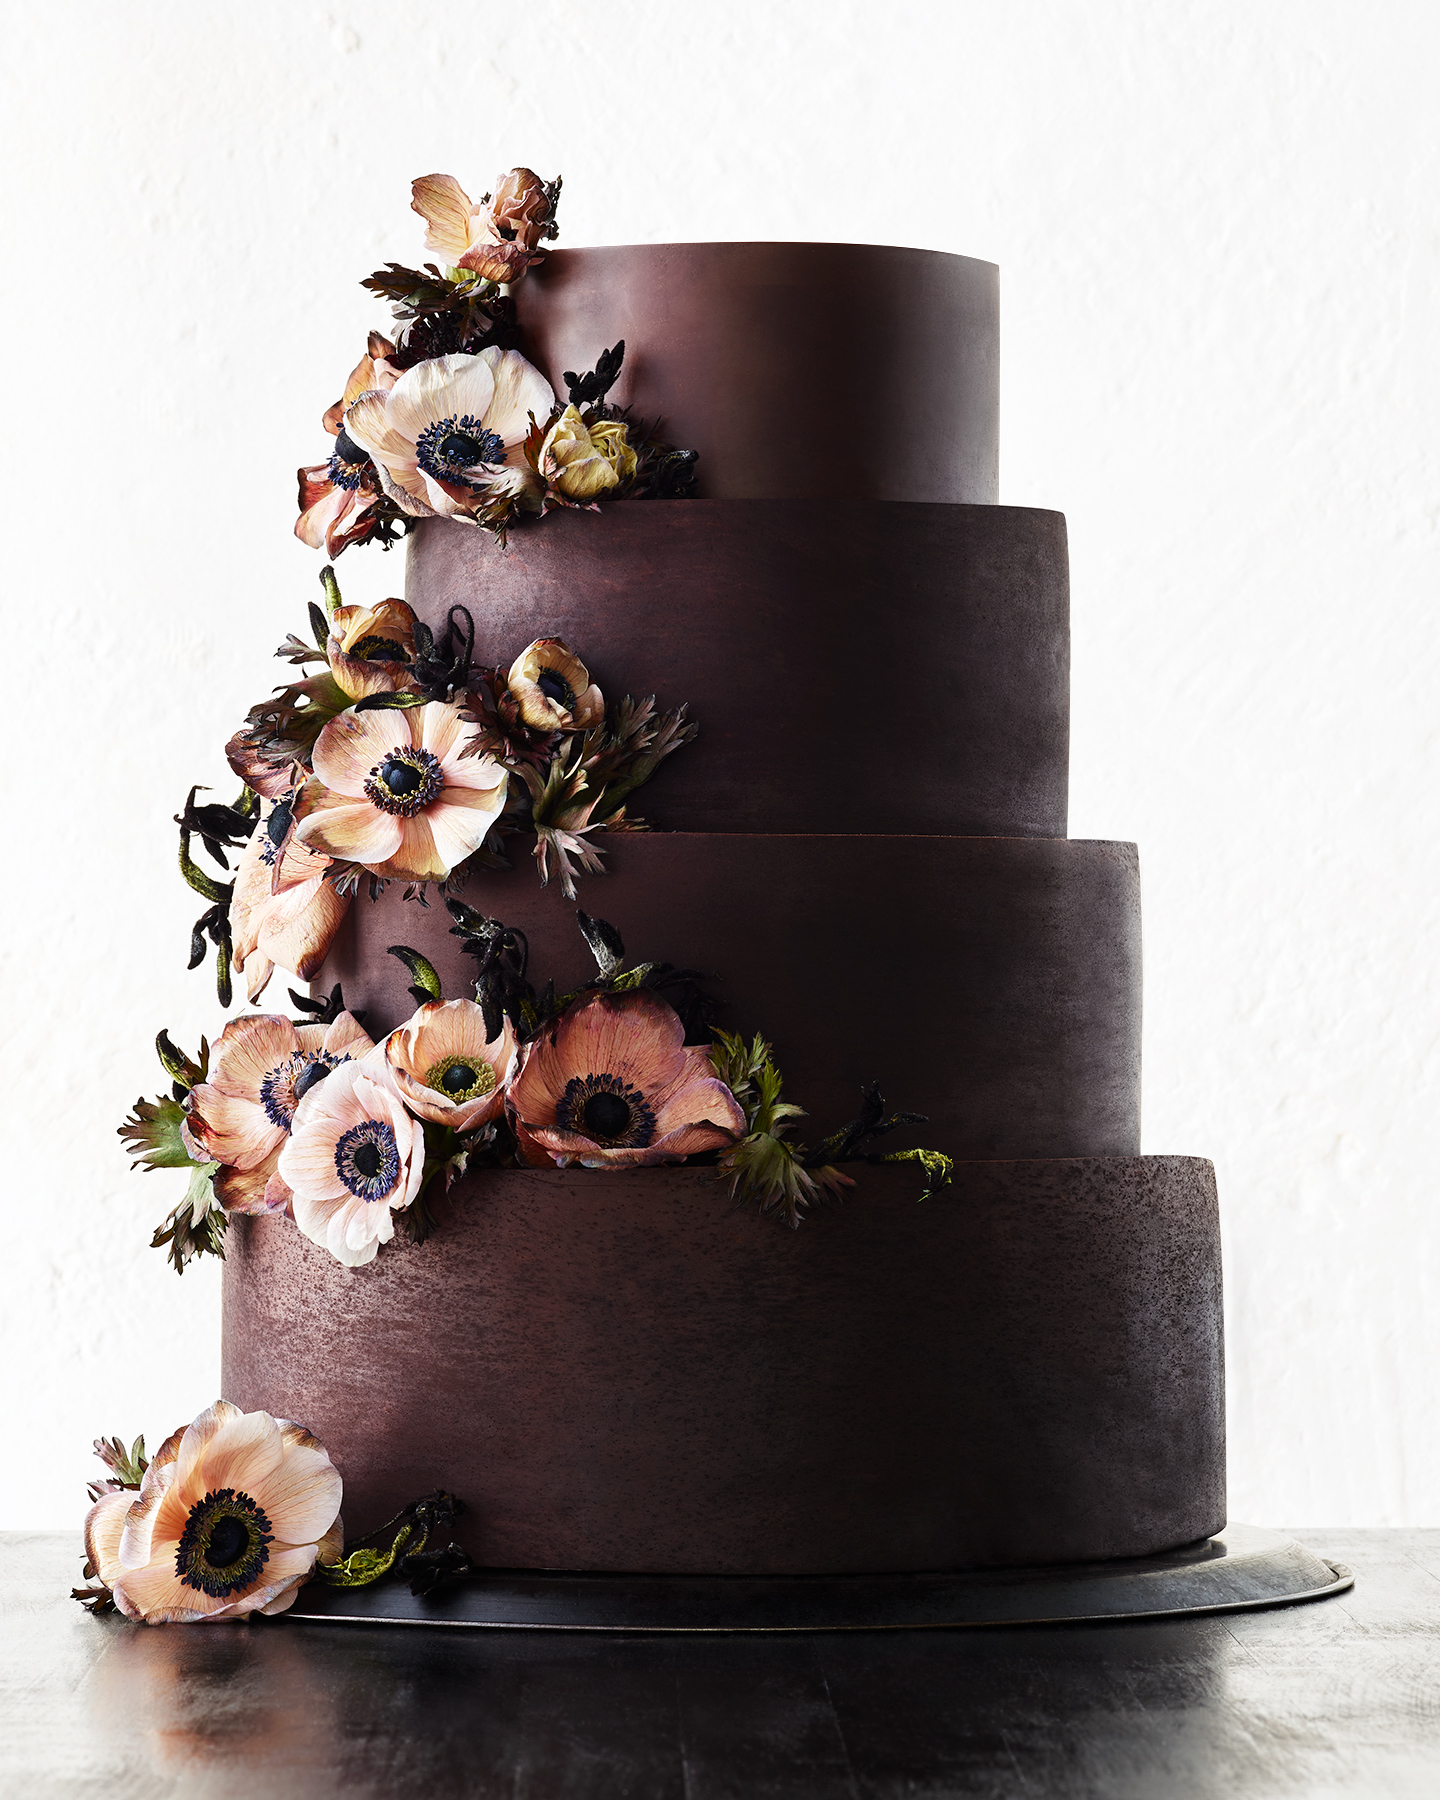 food stylist san francisco Cake_61314.jpg